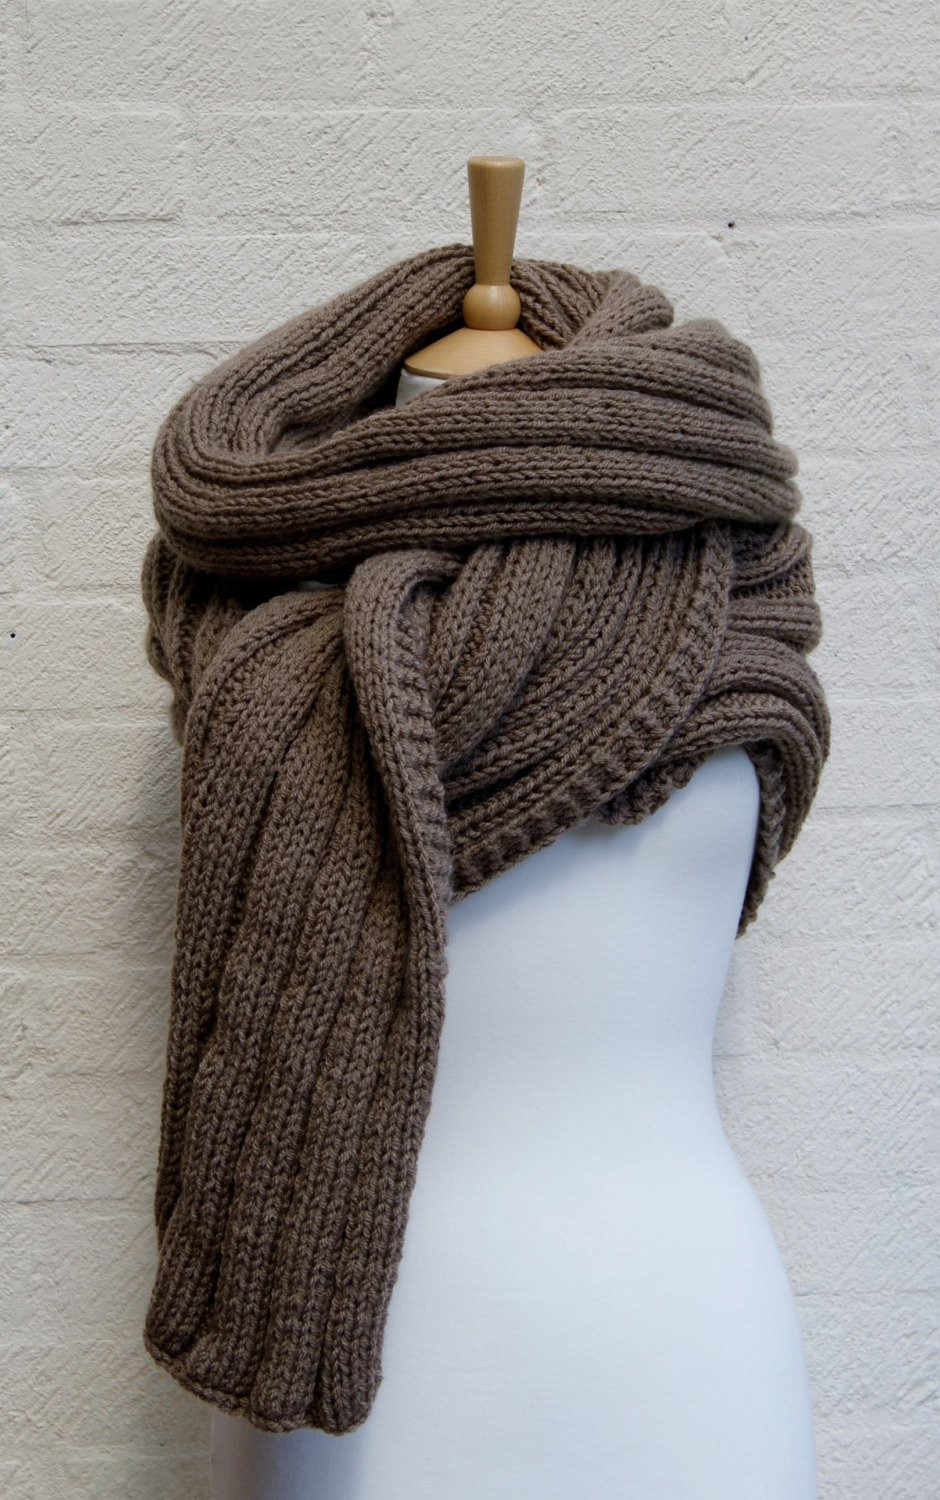 Awesome Extra Long Scarf In Walnut Chunky Knit Scarf Knitted Wrap Chunky Knit Scarf Of Top 50 Photos Chunky Knit Scarf